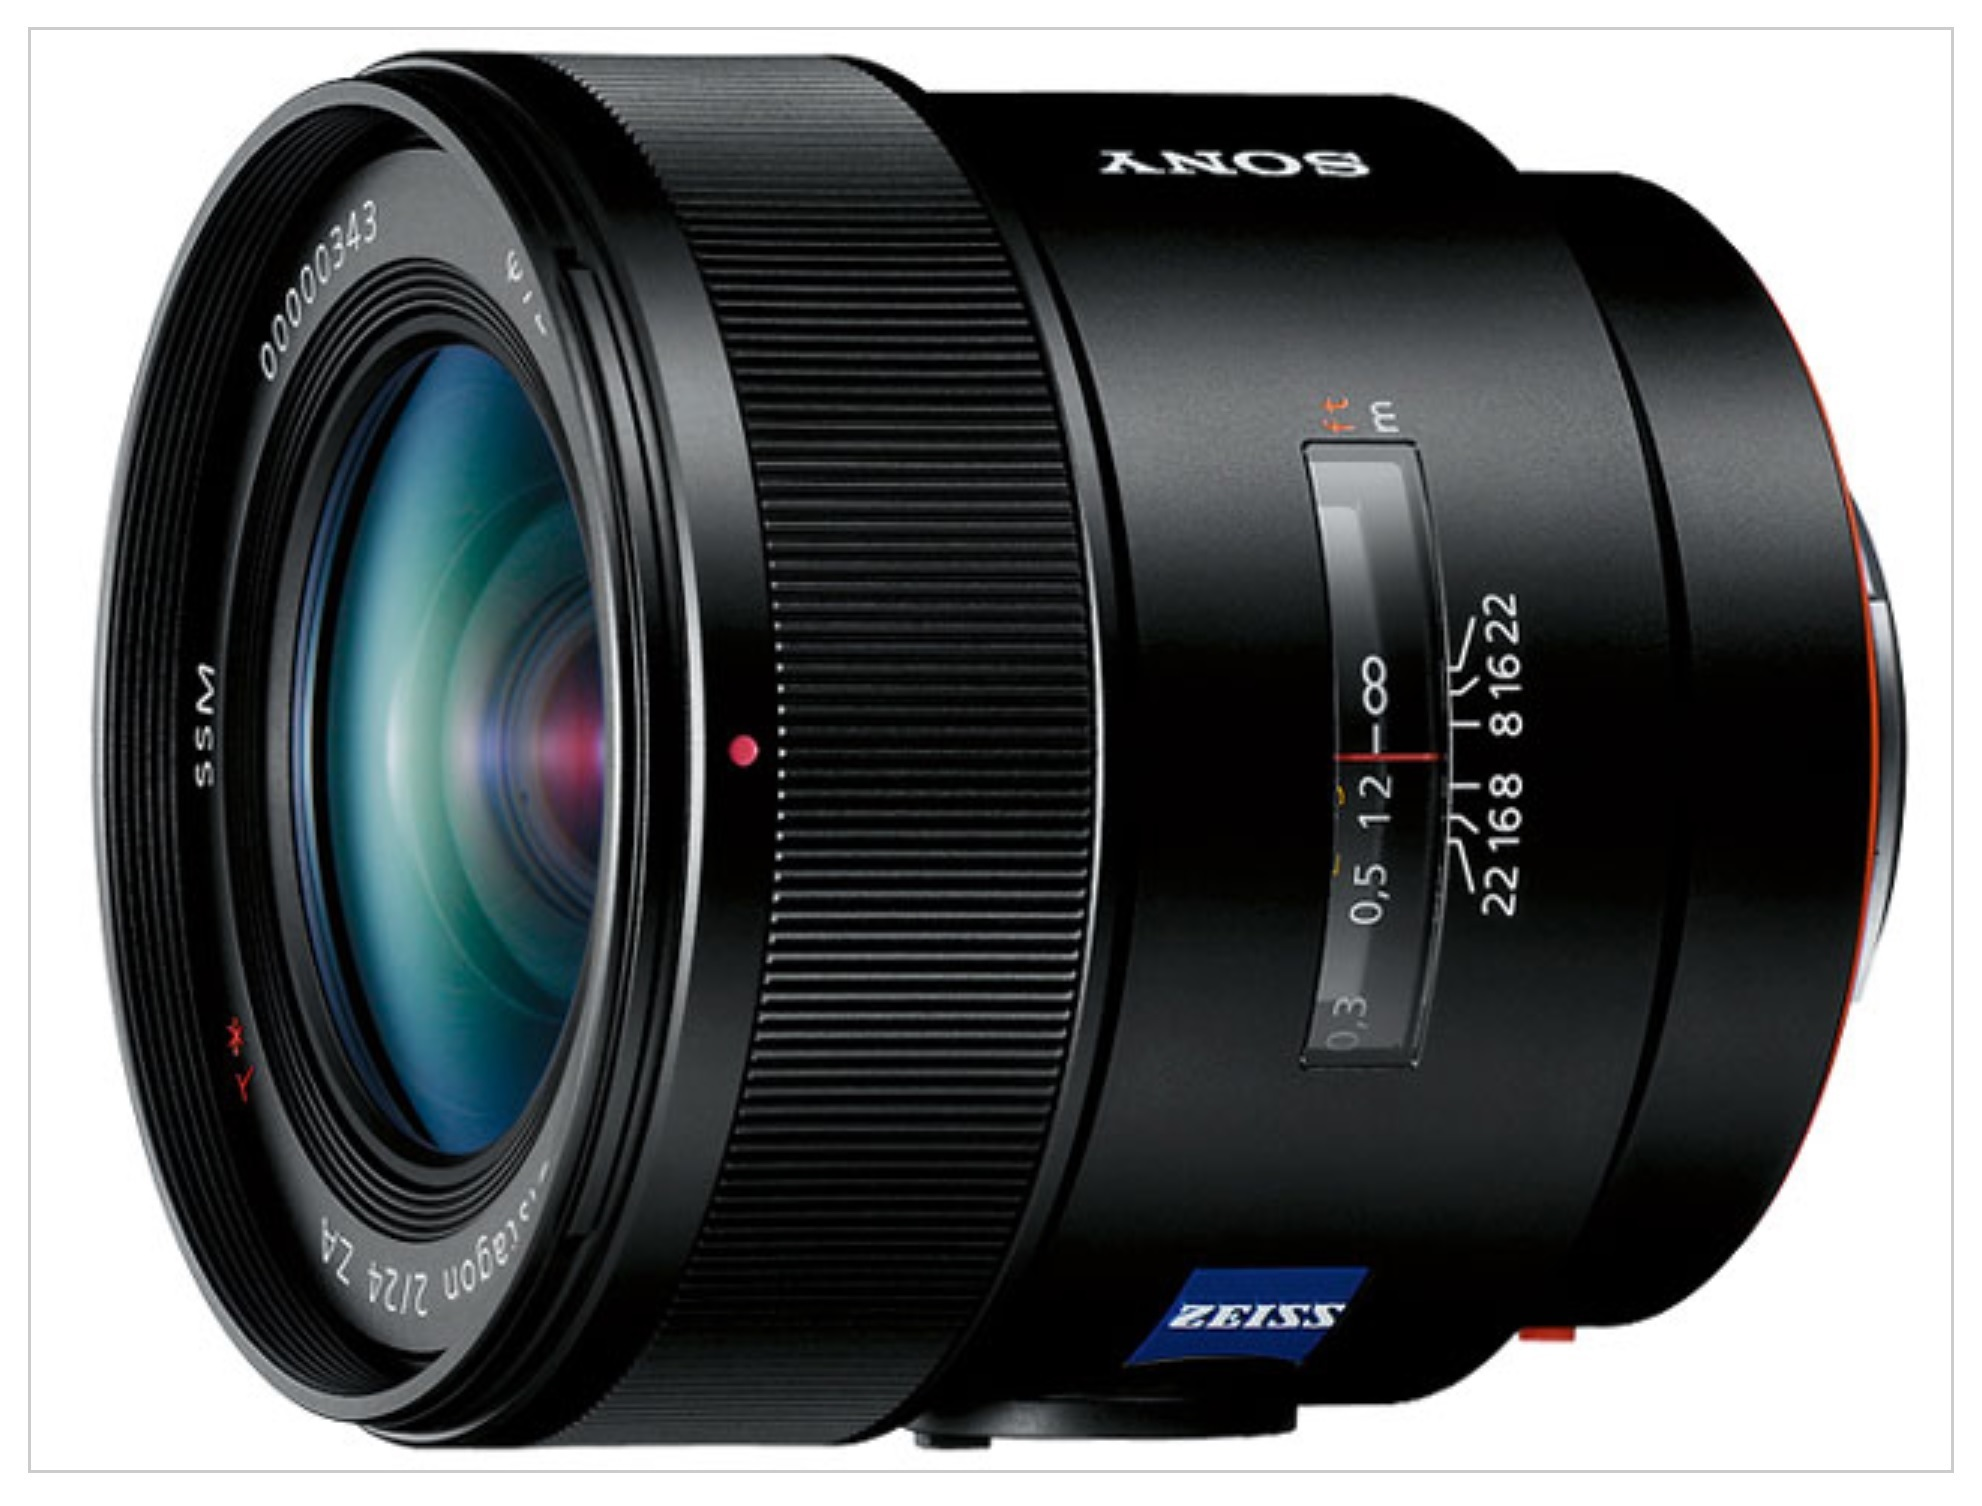 α350とDistagon T* 24mm F2 ZA SSMで撮る湘南_e0341572_14423440.jpg